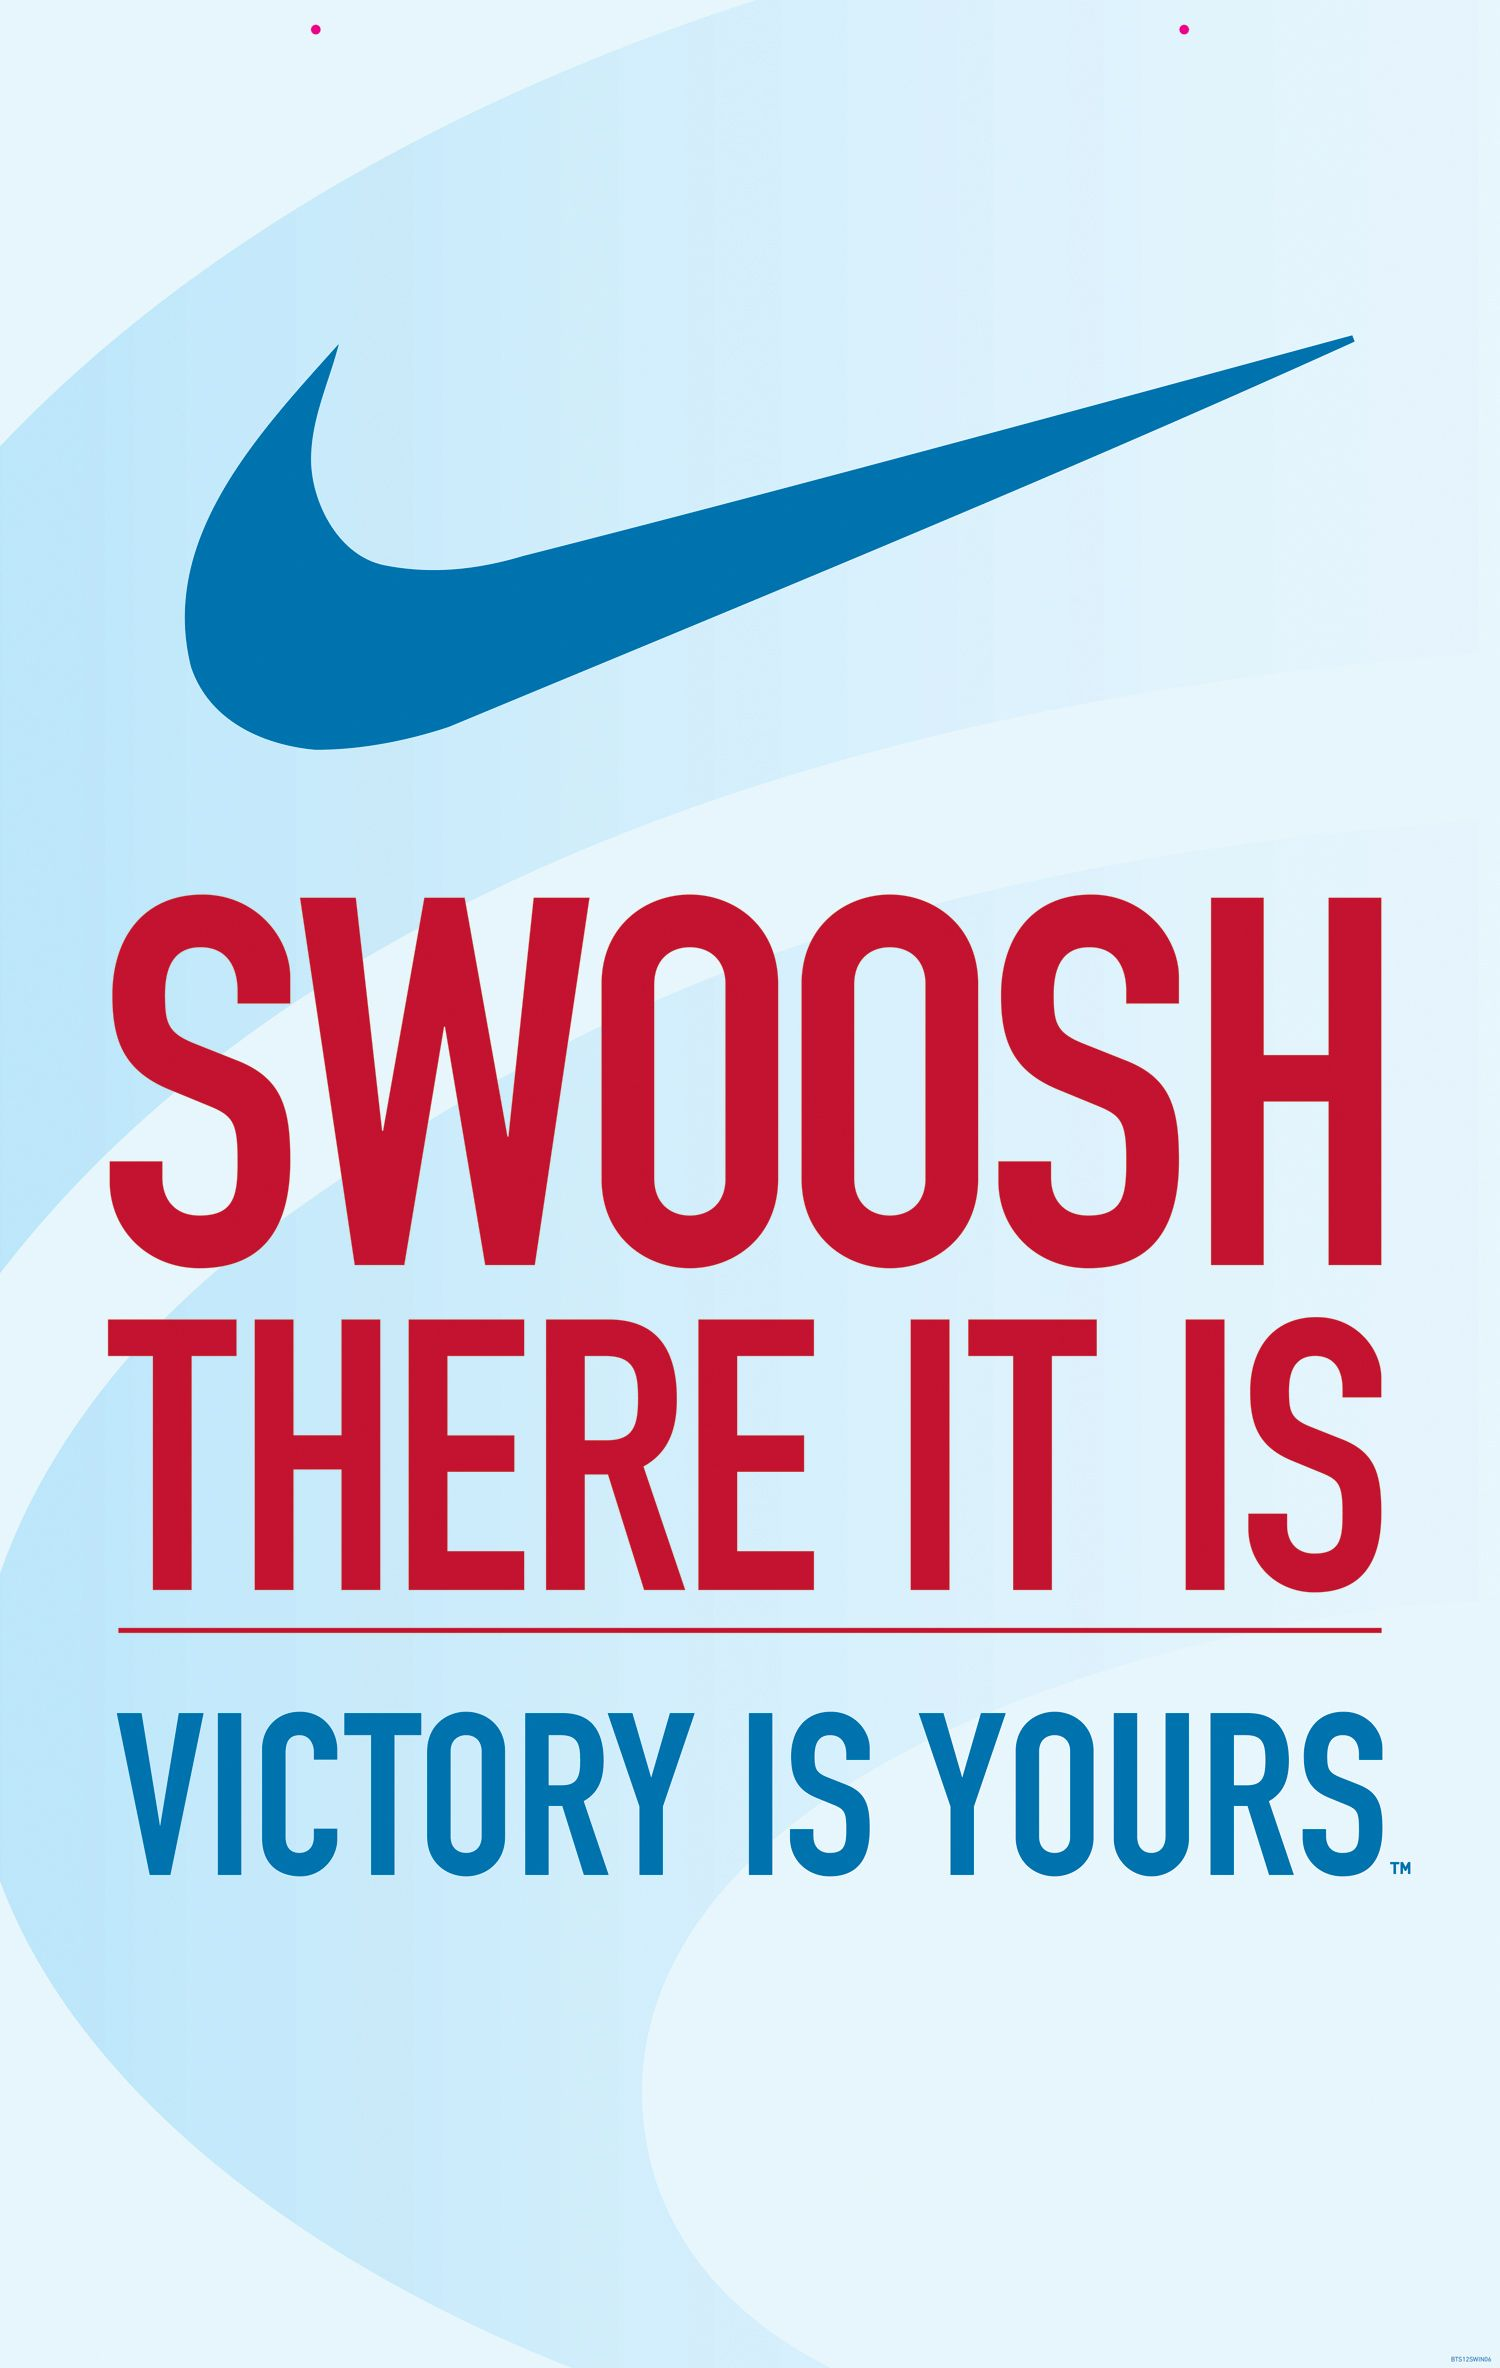 Swoosh Famous Footwear Next Level Apparel Brand Name Shoes